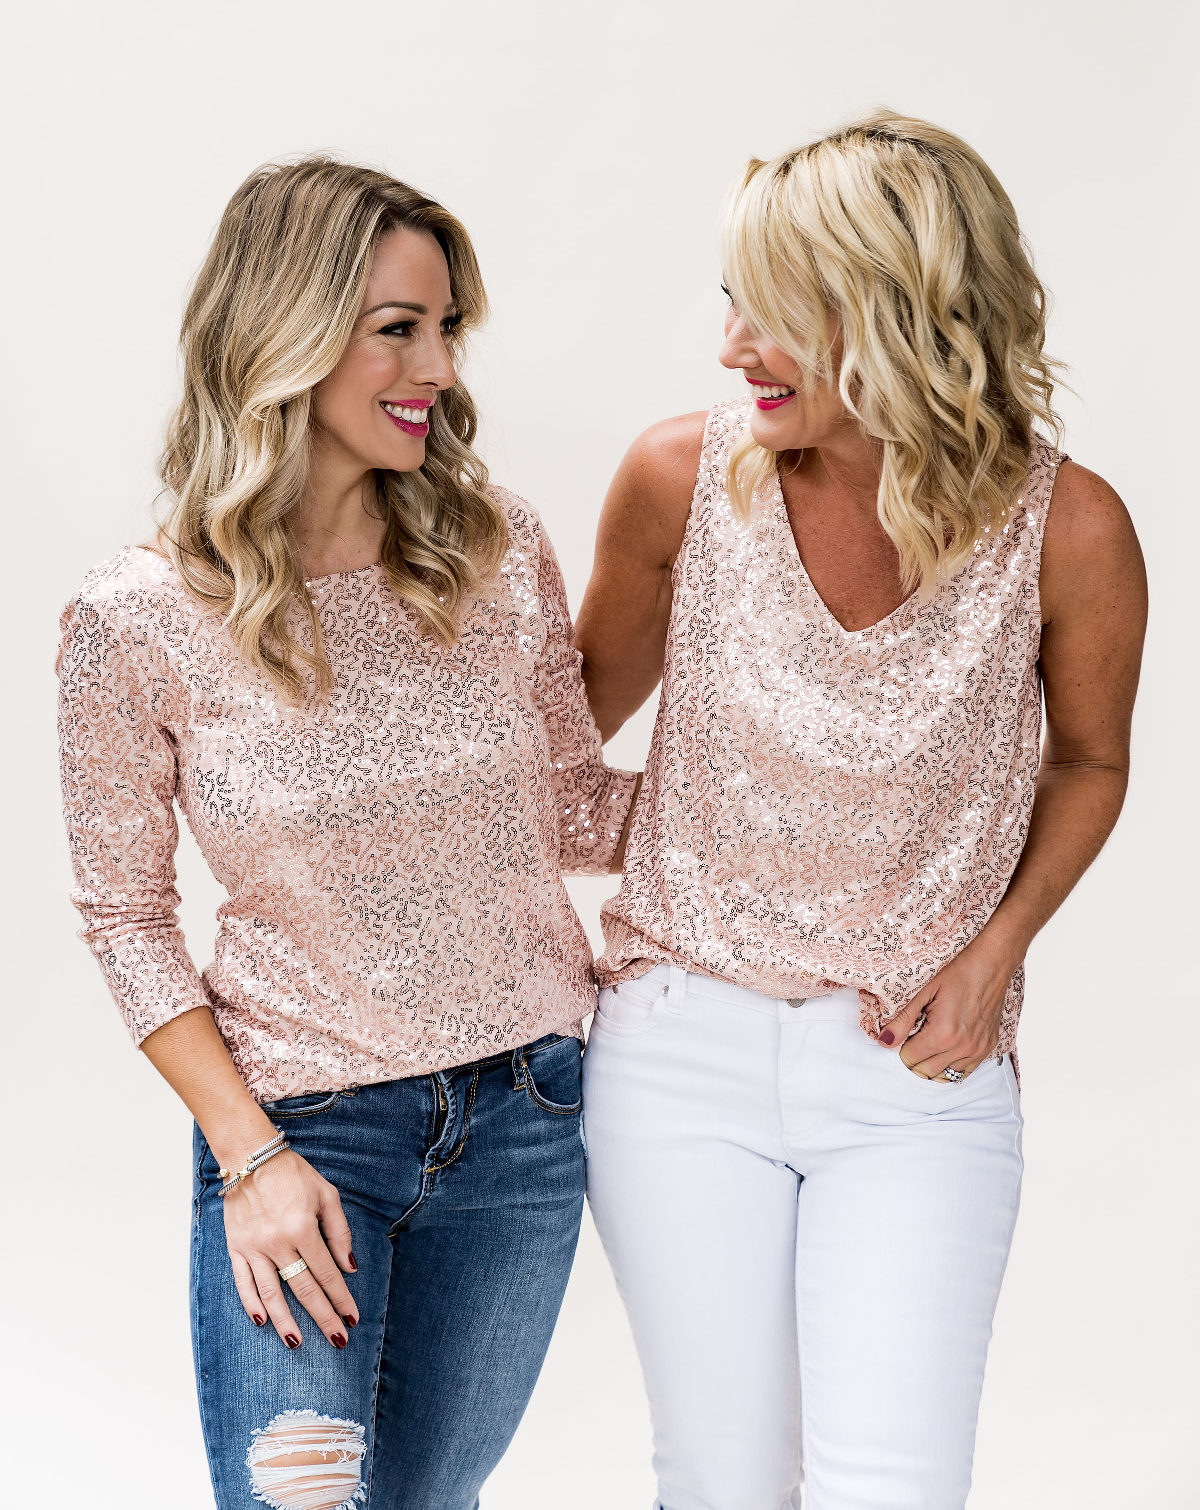 Gibson x Glam sequin top